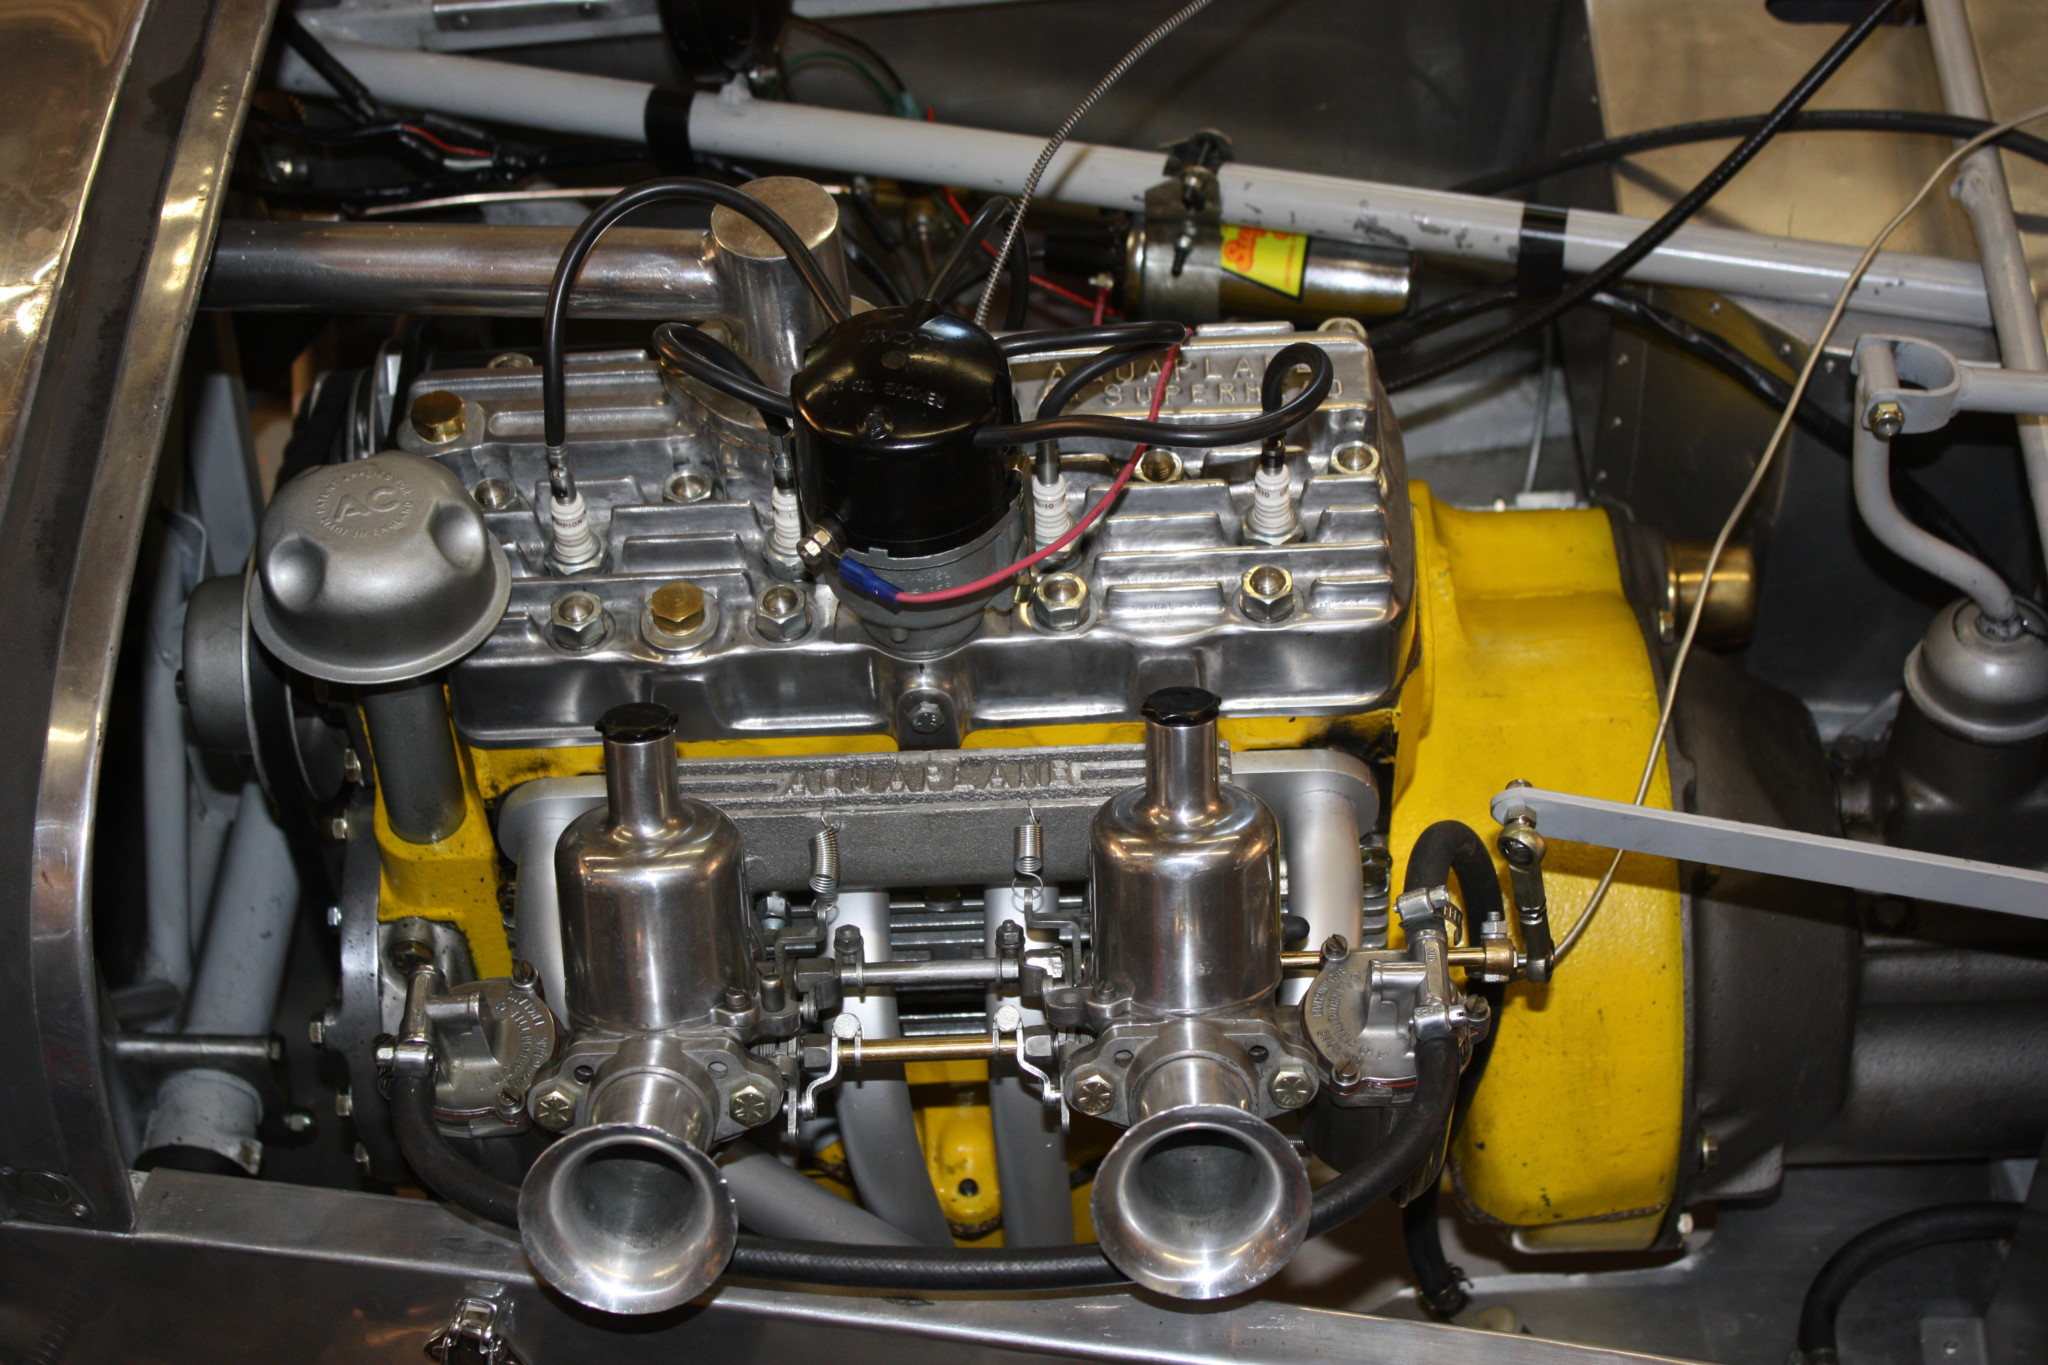 1958 Lotus Seven S1 engine